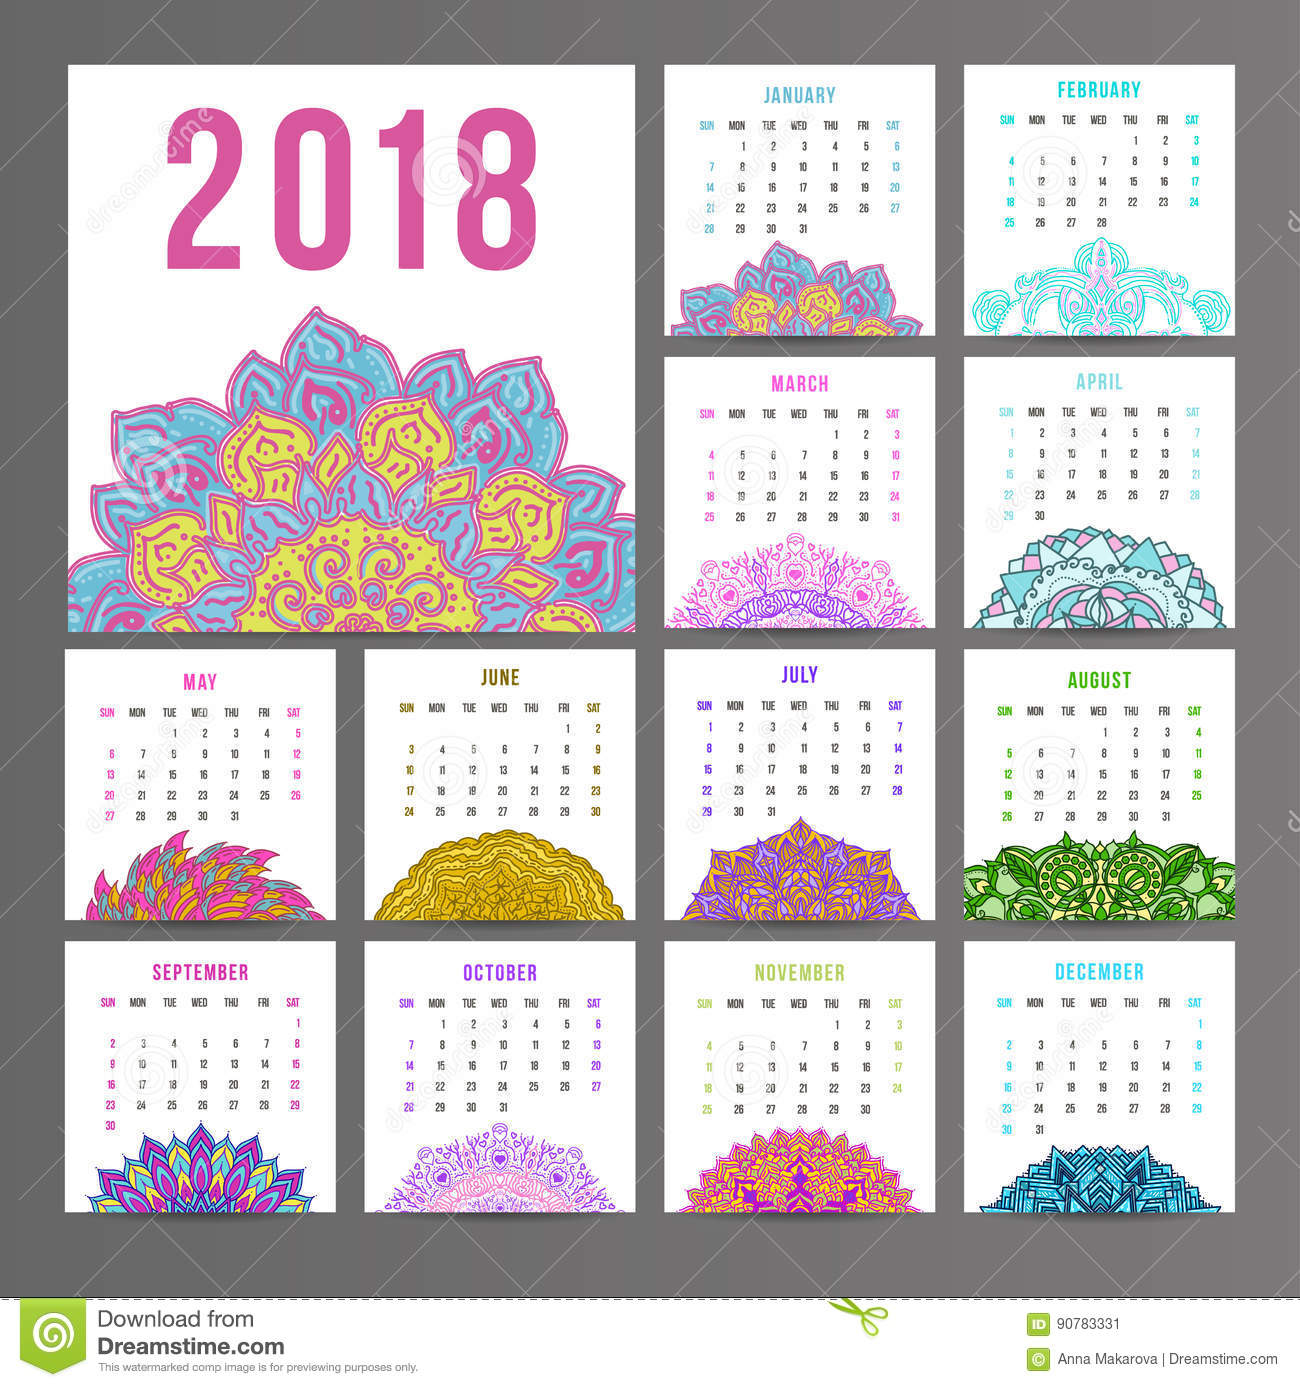 Calendario Con Week 2018.Calendar For 2018 Year On Indian Ornamental Stock